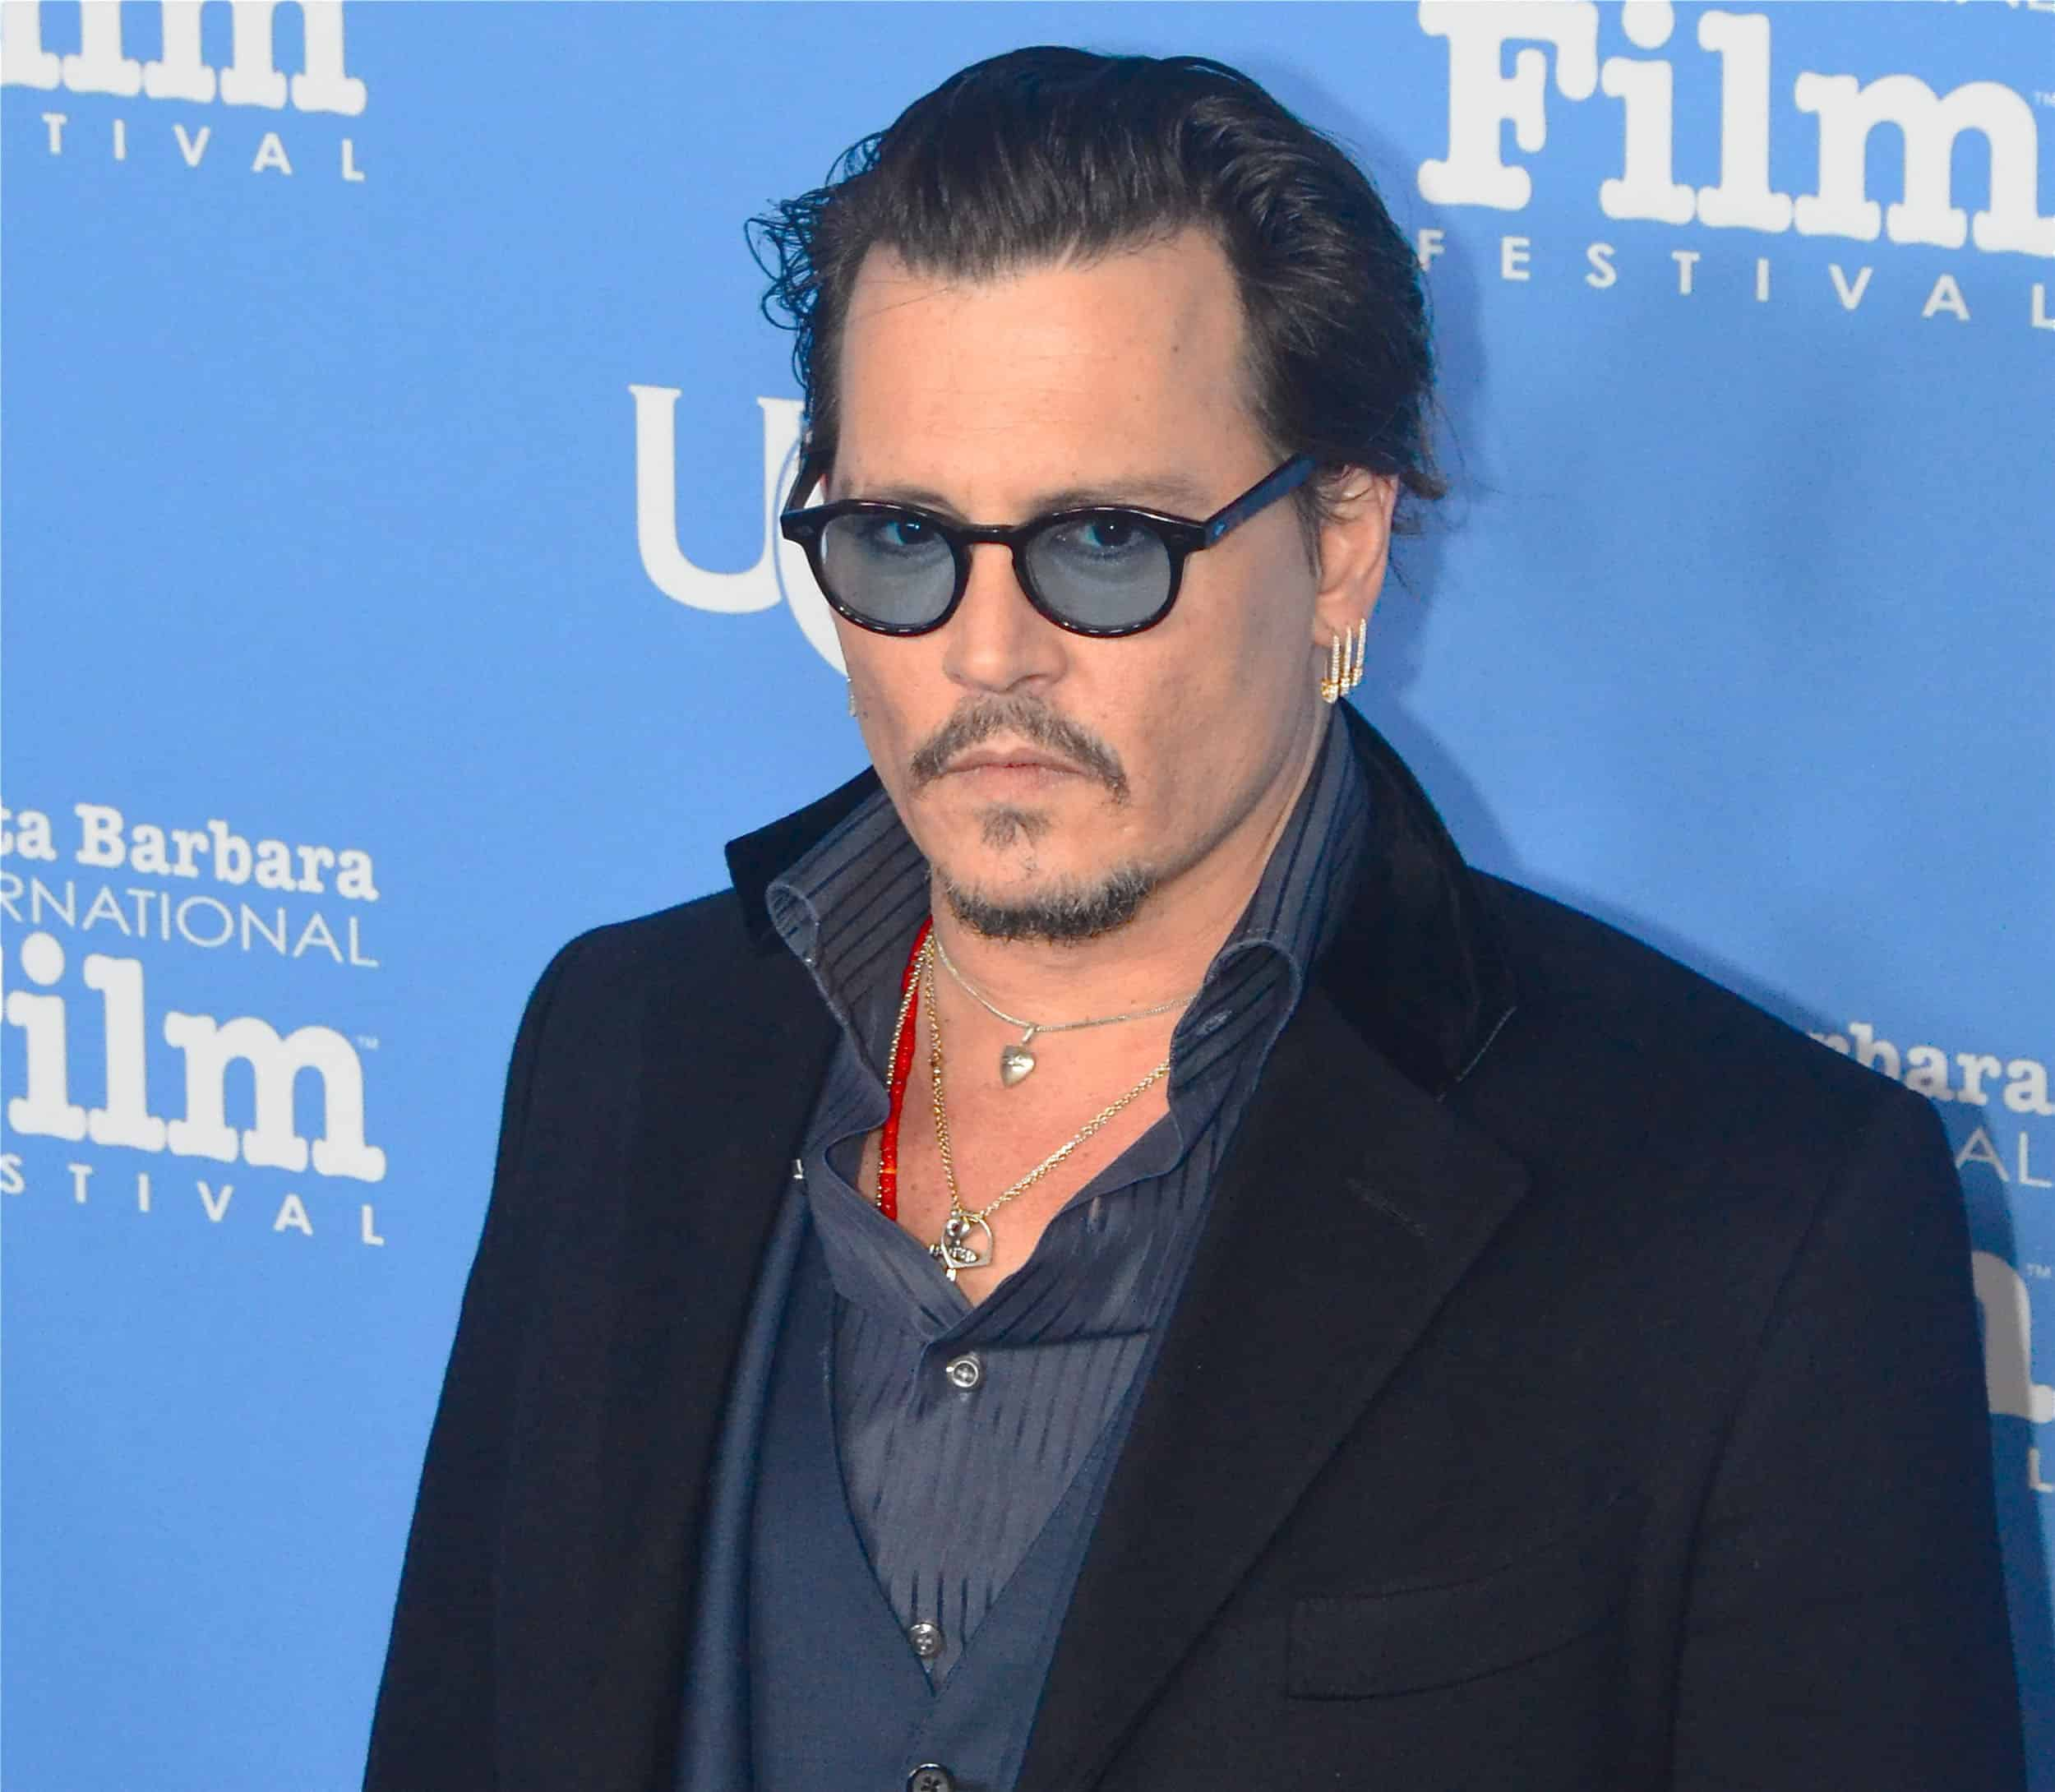 johnny depp begeistert von alice im wunderland 2 loomee tv. Black Bedroom Furniture Sets. Home Design Ideas